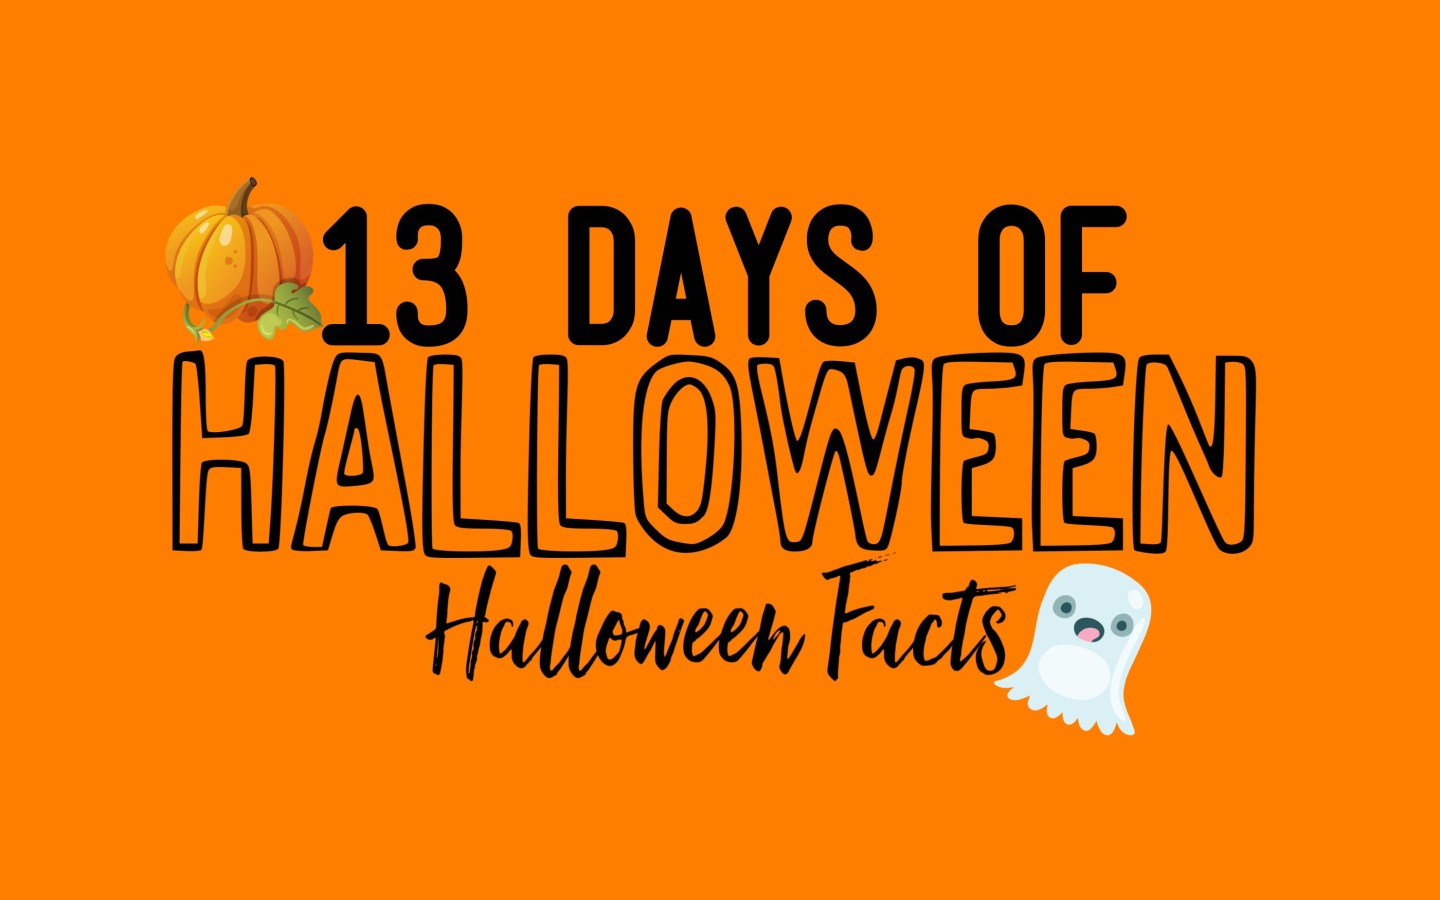 13 Days Of Halloween, Halloween Facts!